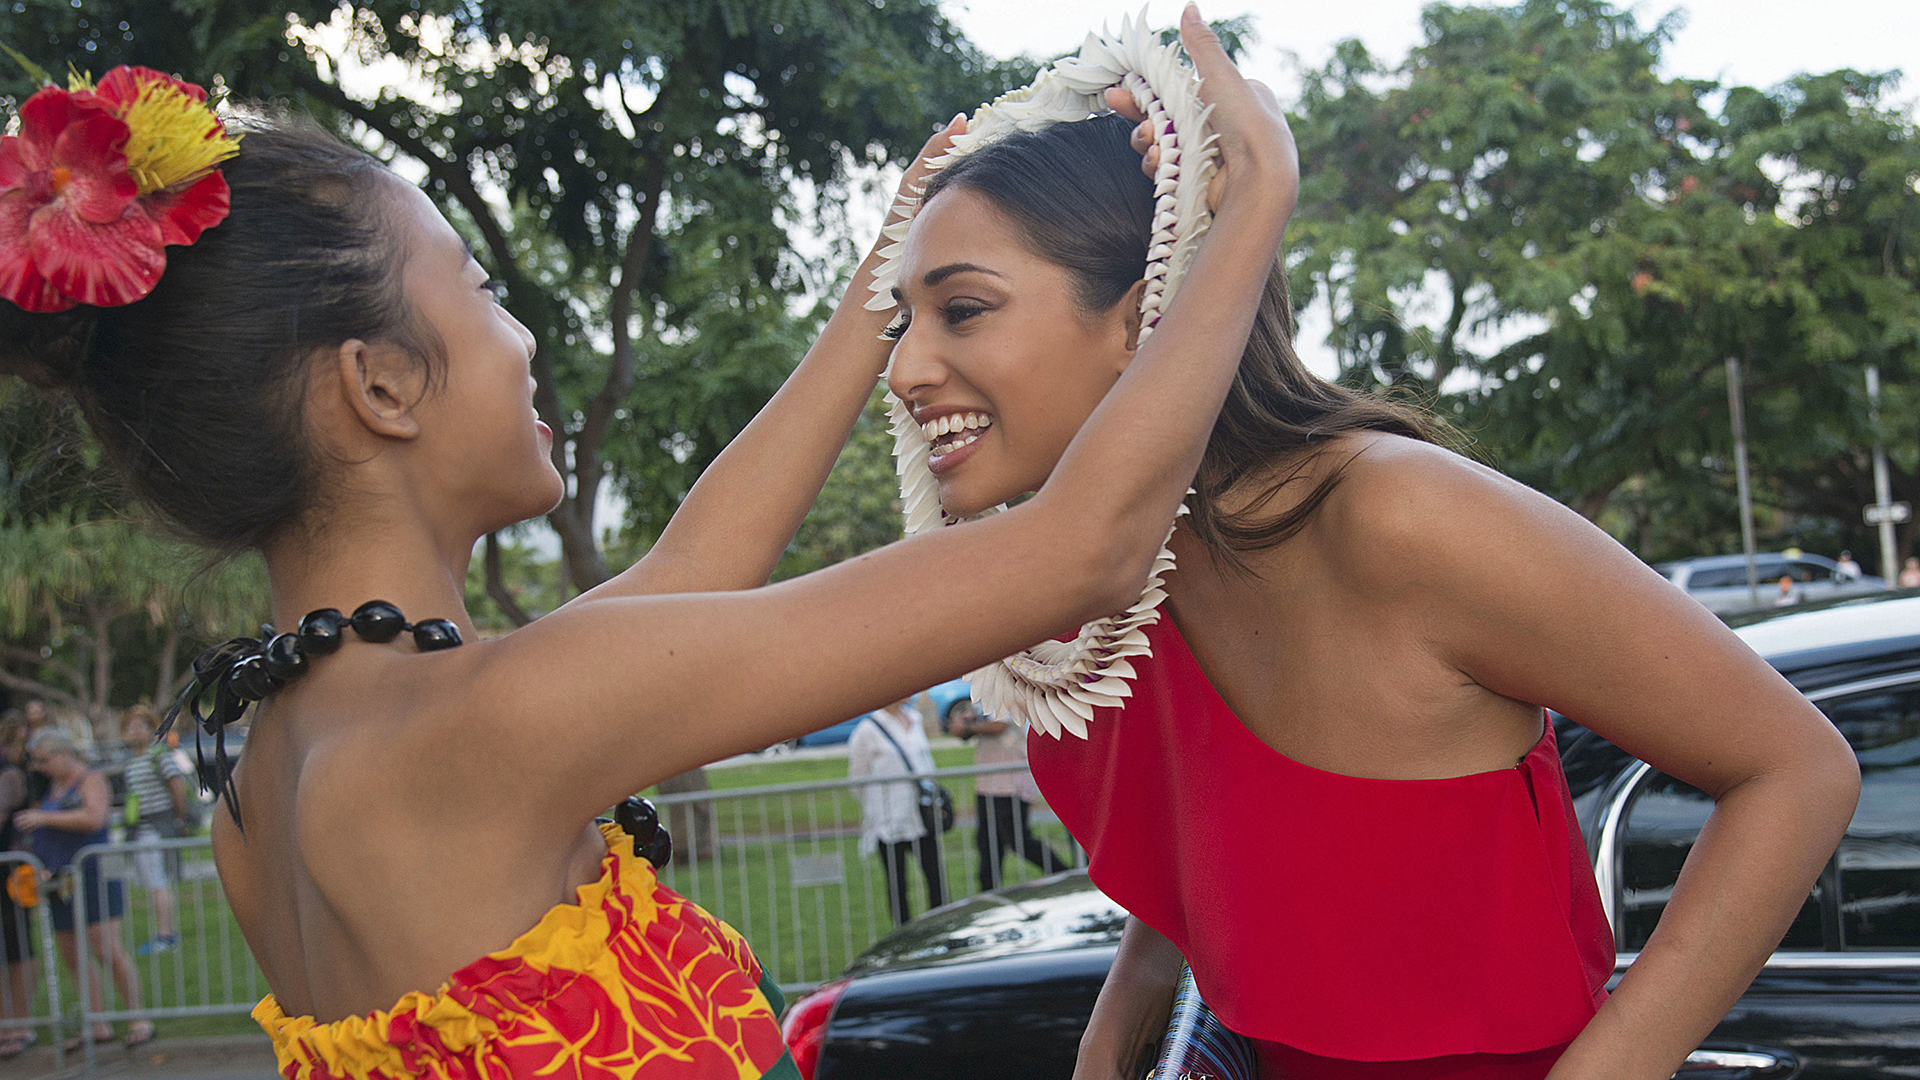 Meaghan Rath receives a lei before entering the celebration.